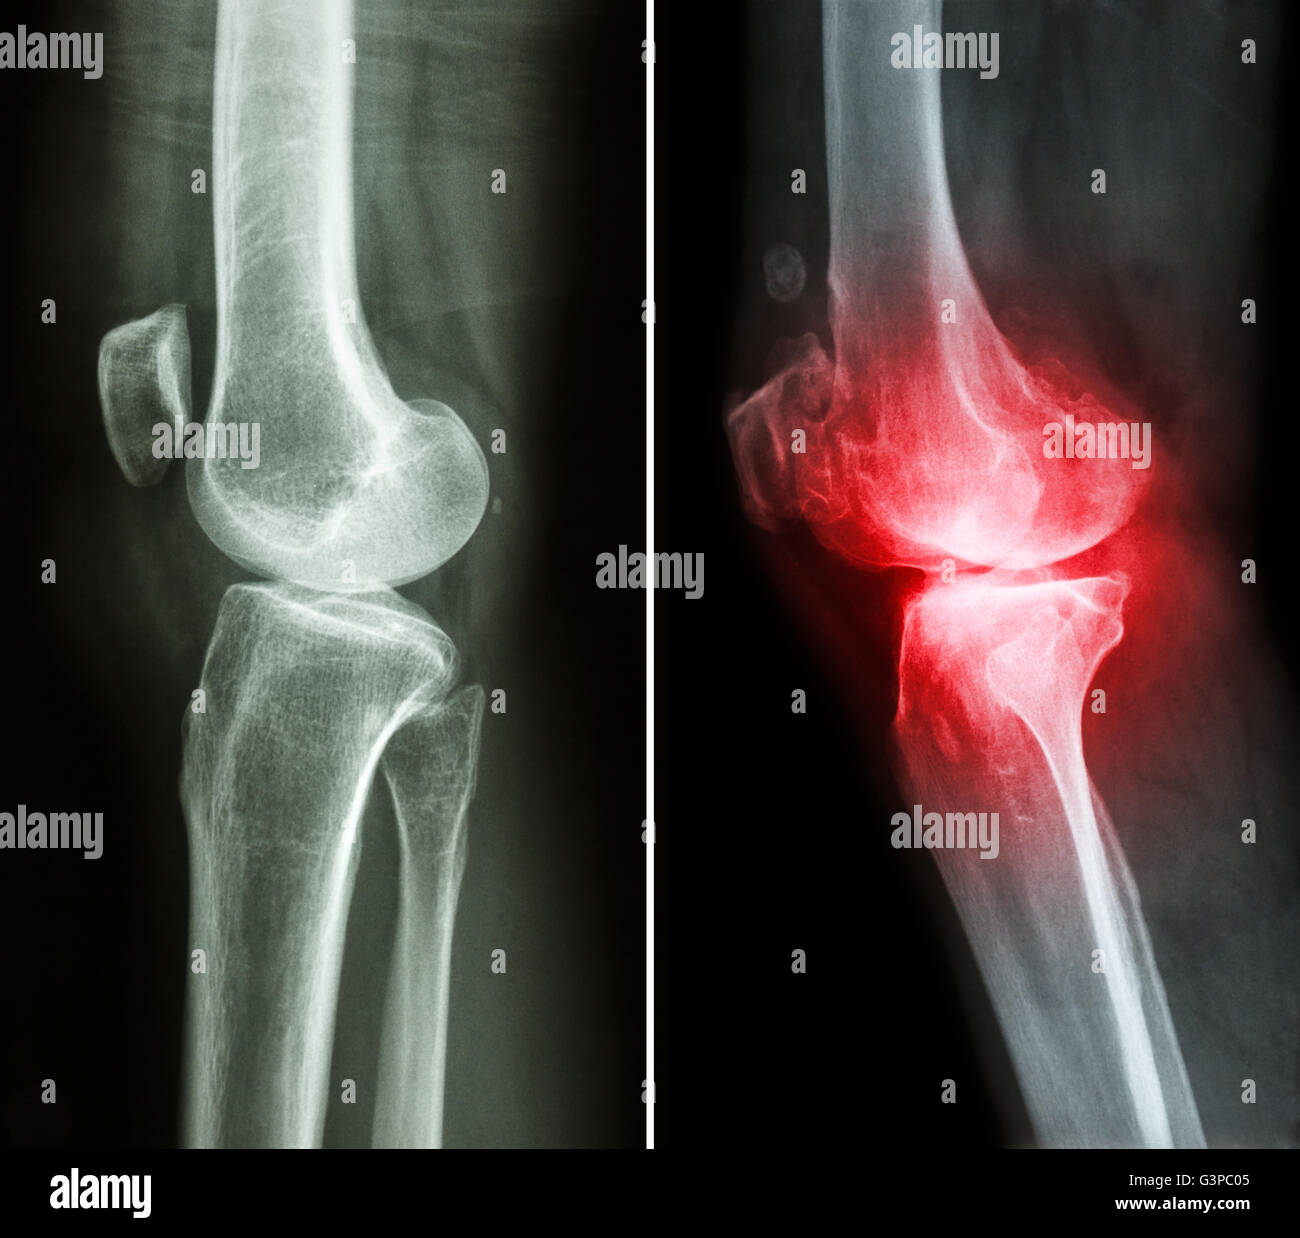 normal knee ( left image ) and osteoarthritis knee ( right image ) ( lateral view ) - Stock Image